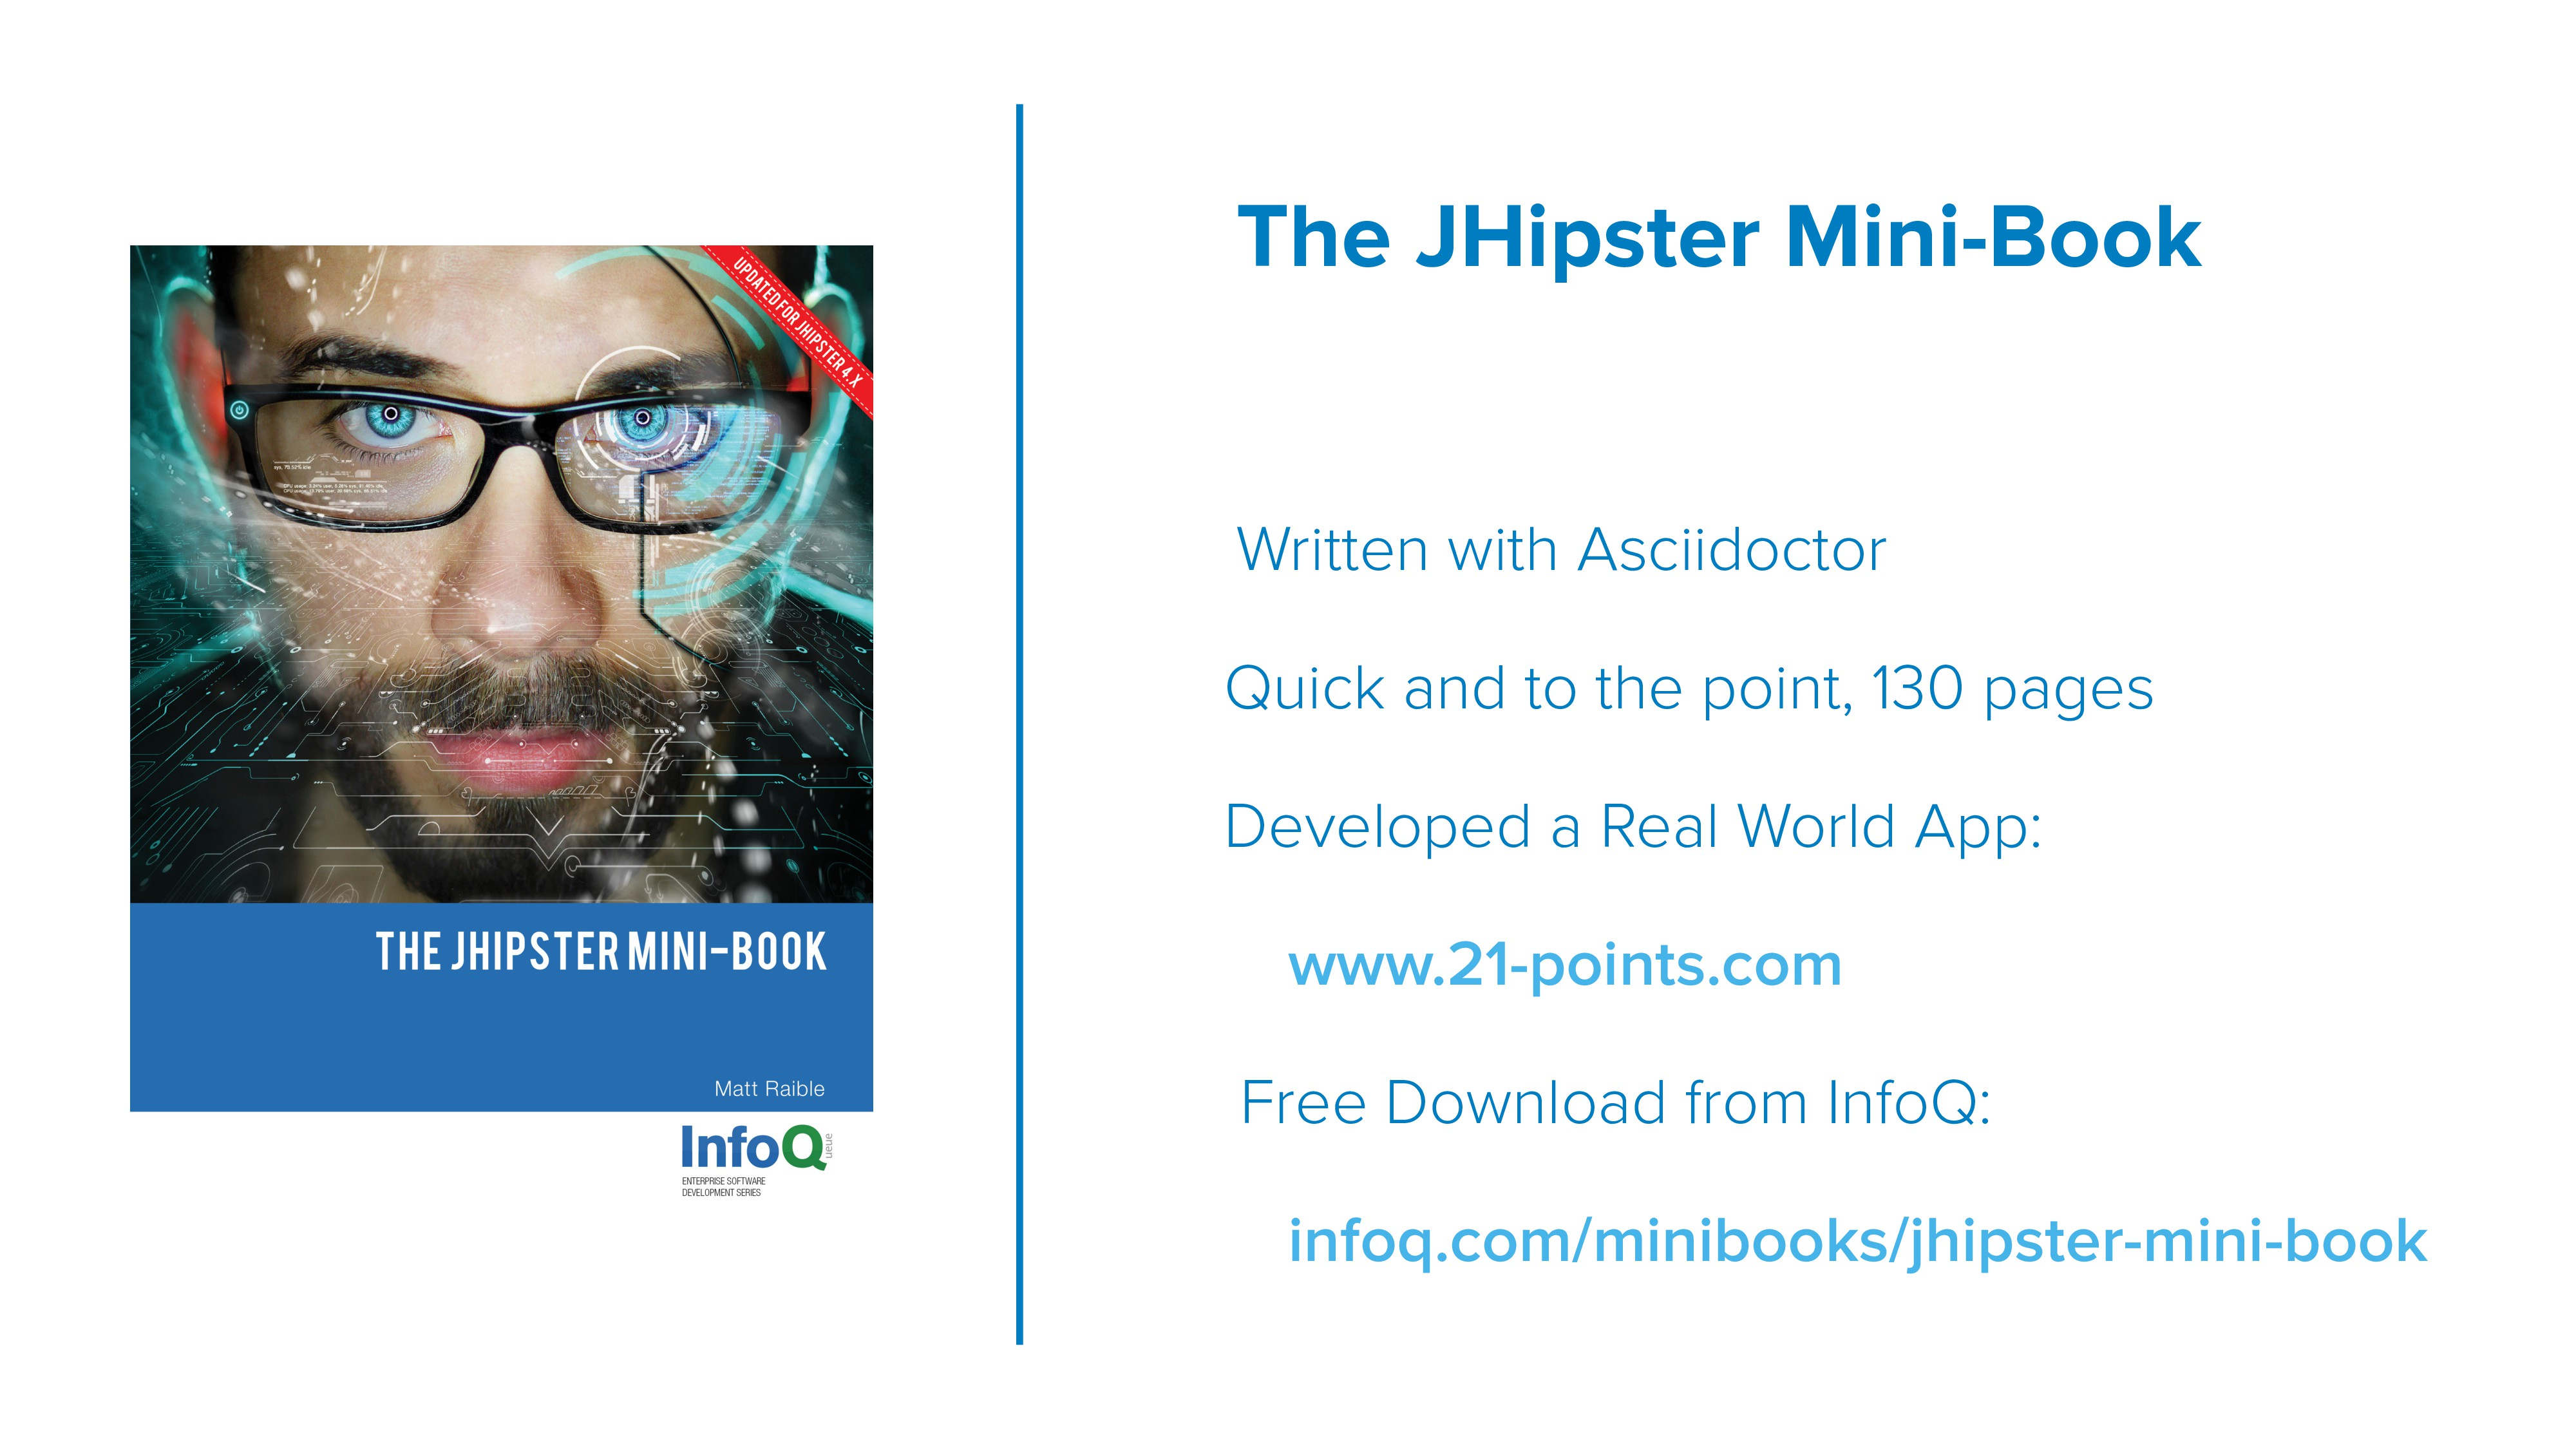 The JHipster Mini-Book